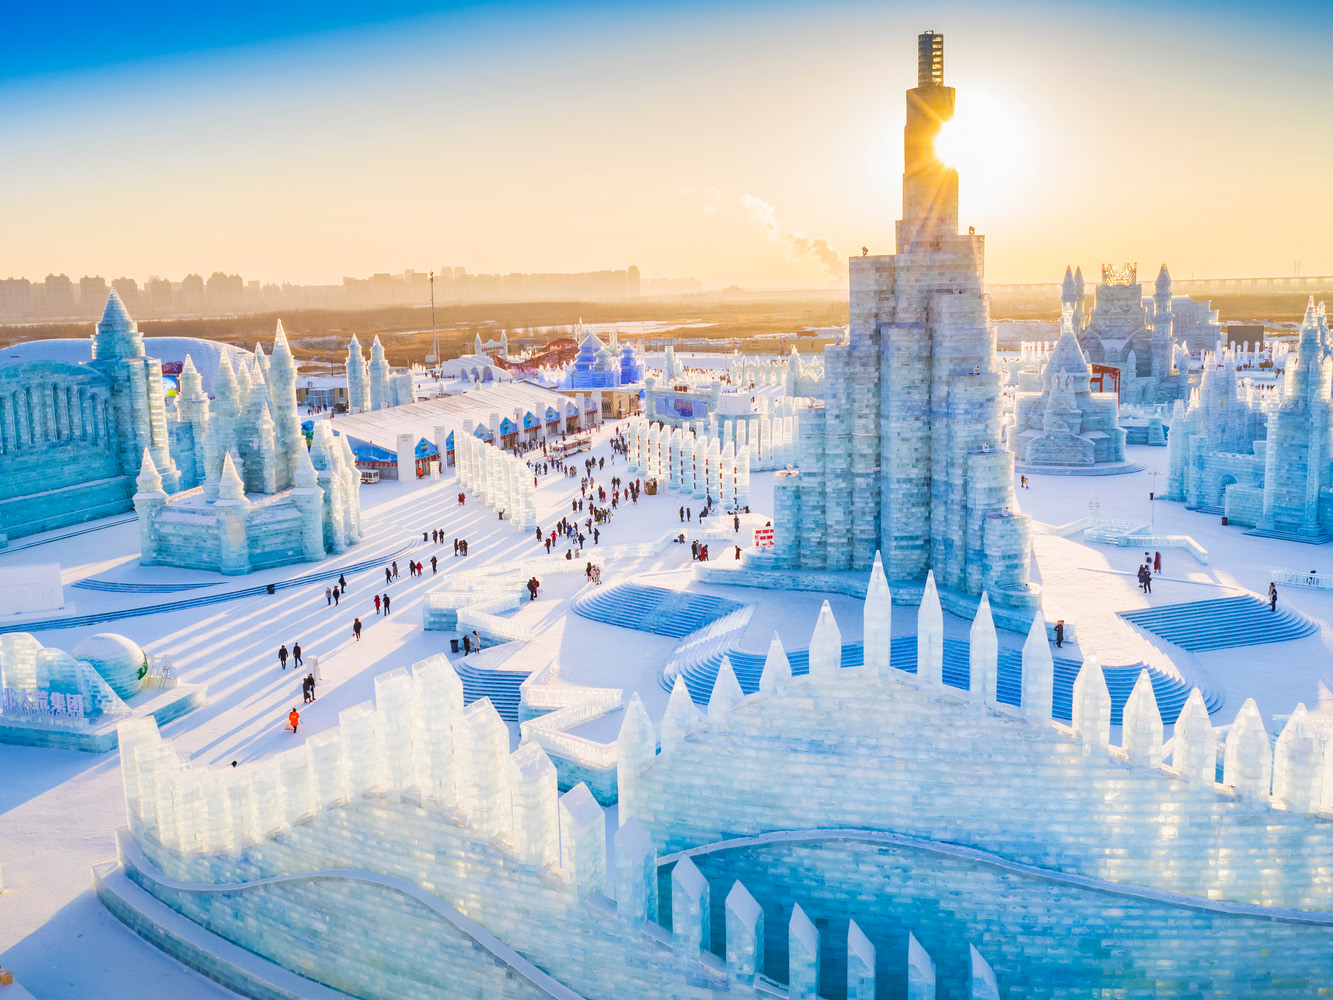 china harbin ice festival international architecture